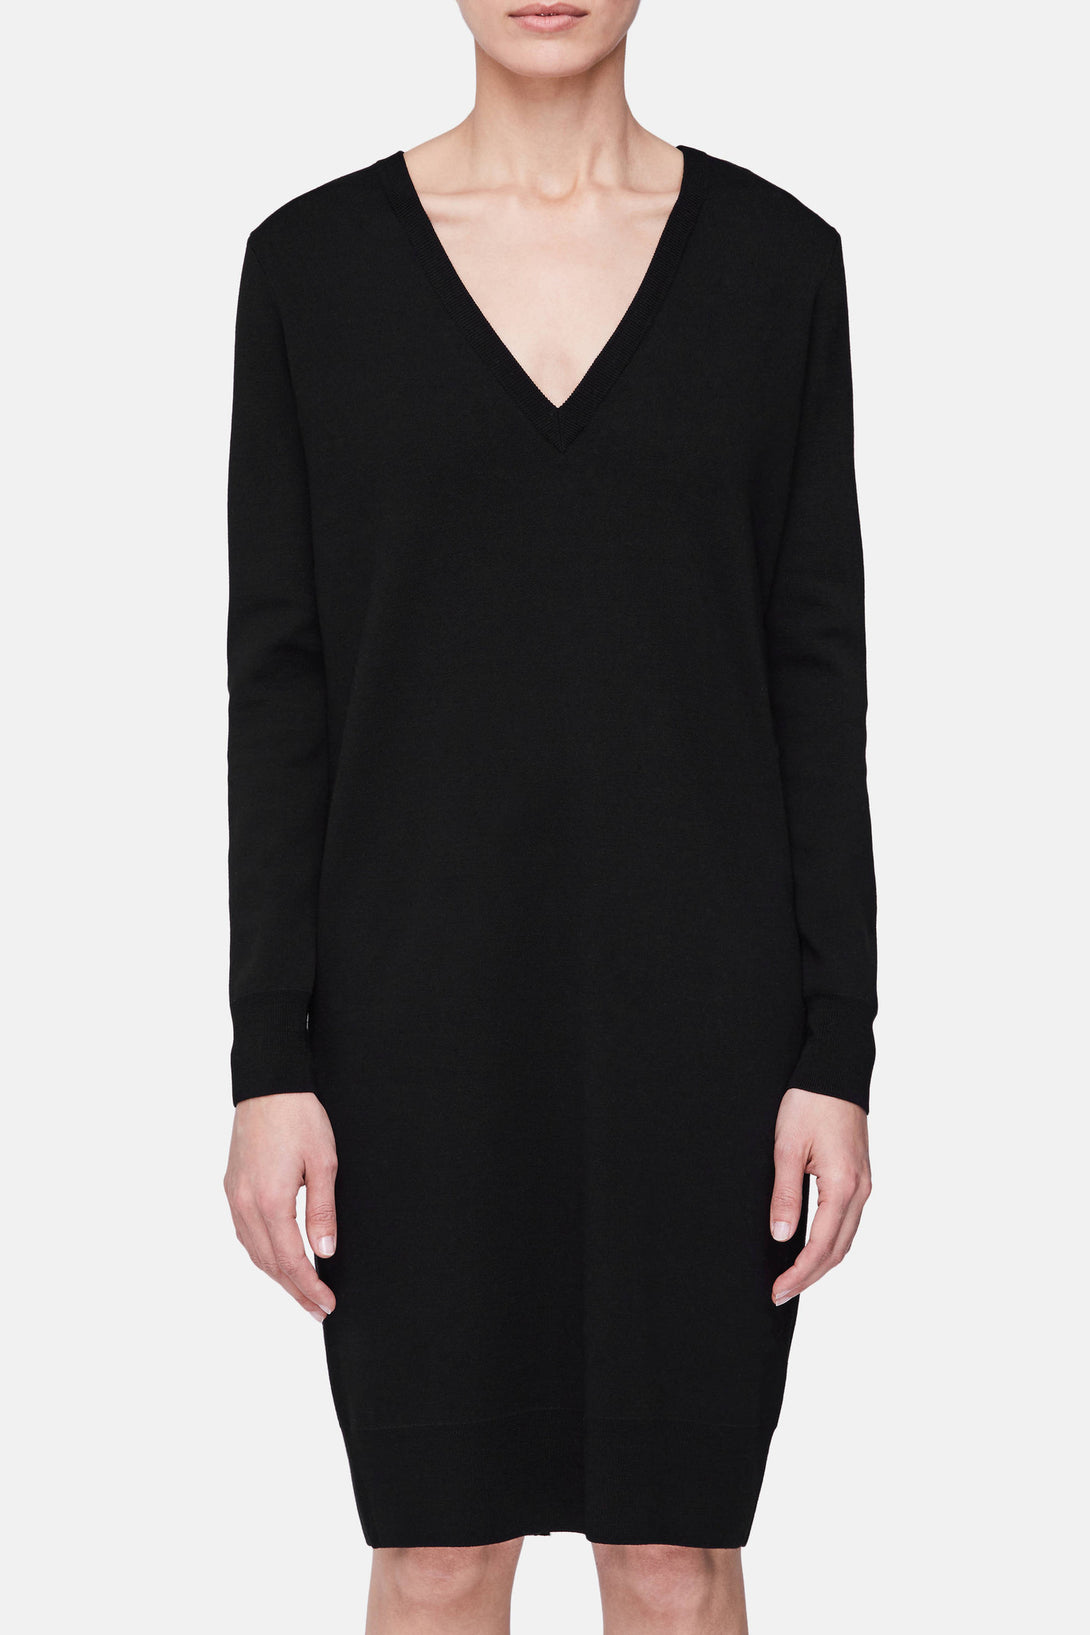 Button Back Knit Dress - Black